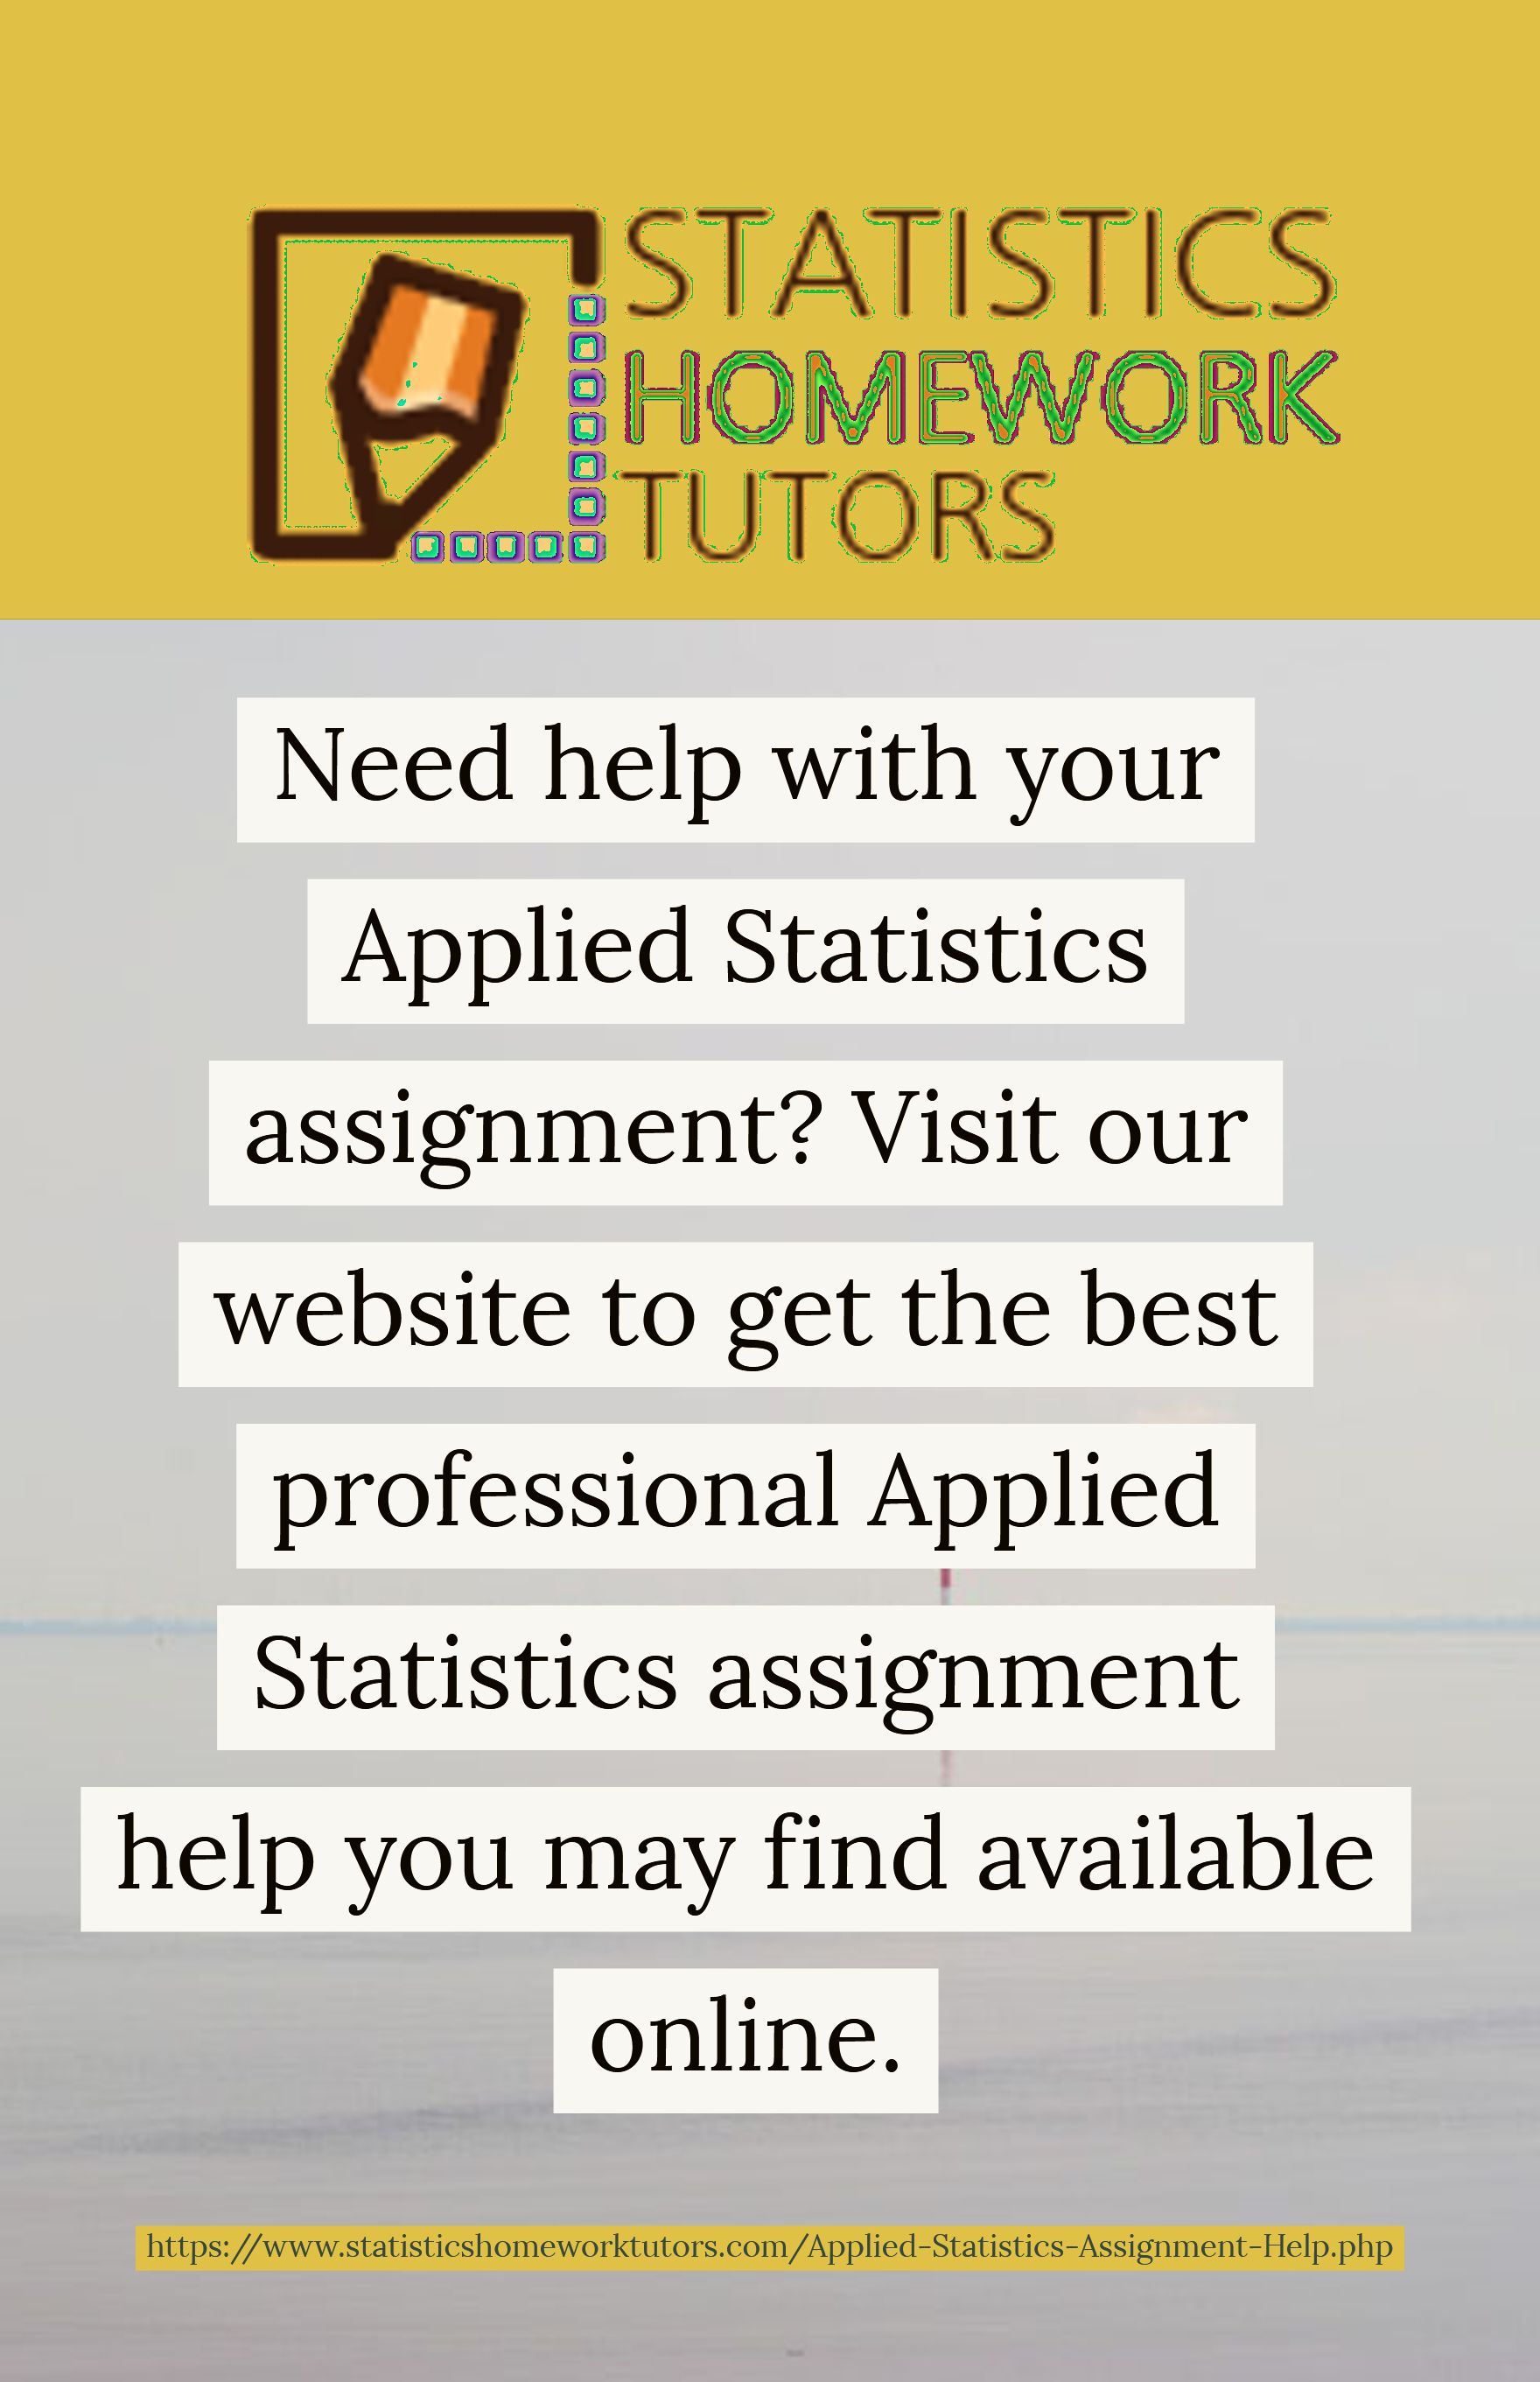 Pin By Statistics Homework Tutors On Statistics Homework Tutors  Contact Our Team At Applied Statistics Online Help To Get Instant Applied Statistics  Help Https